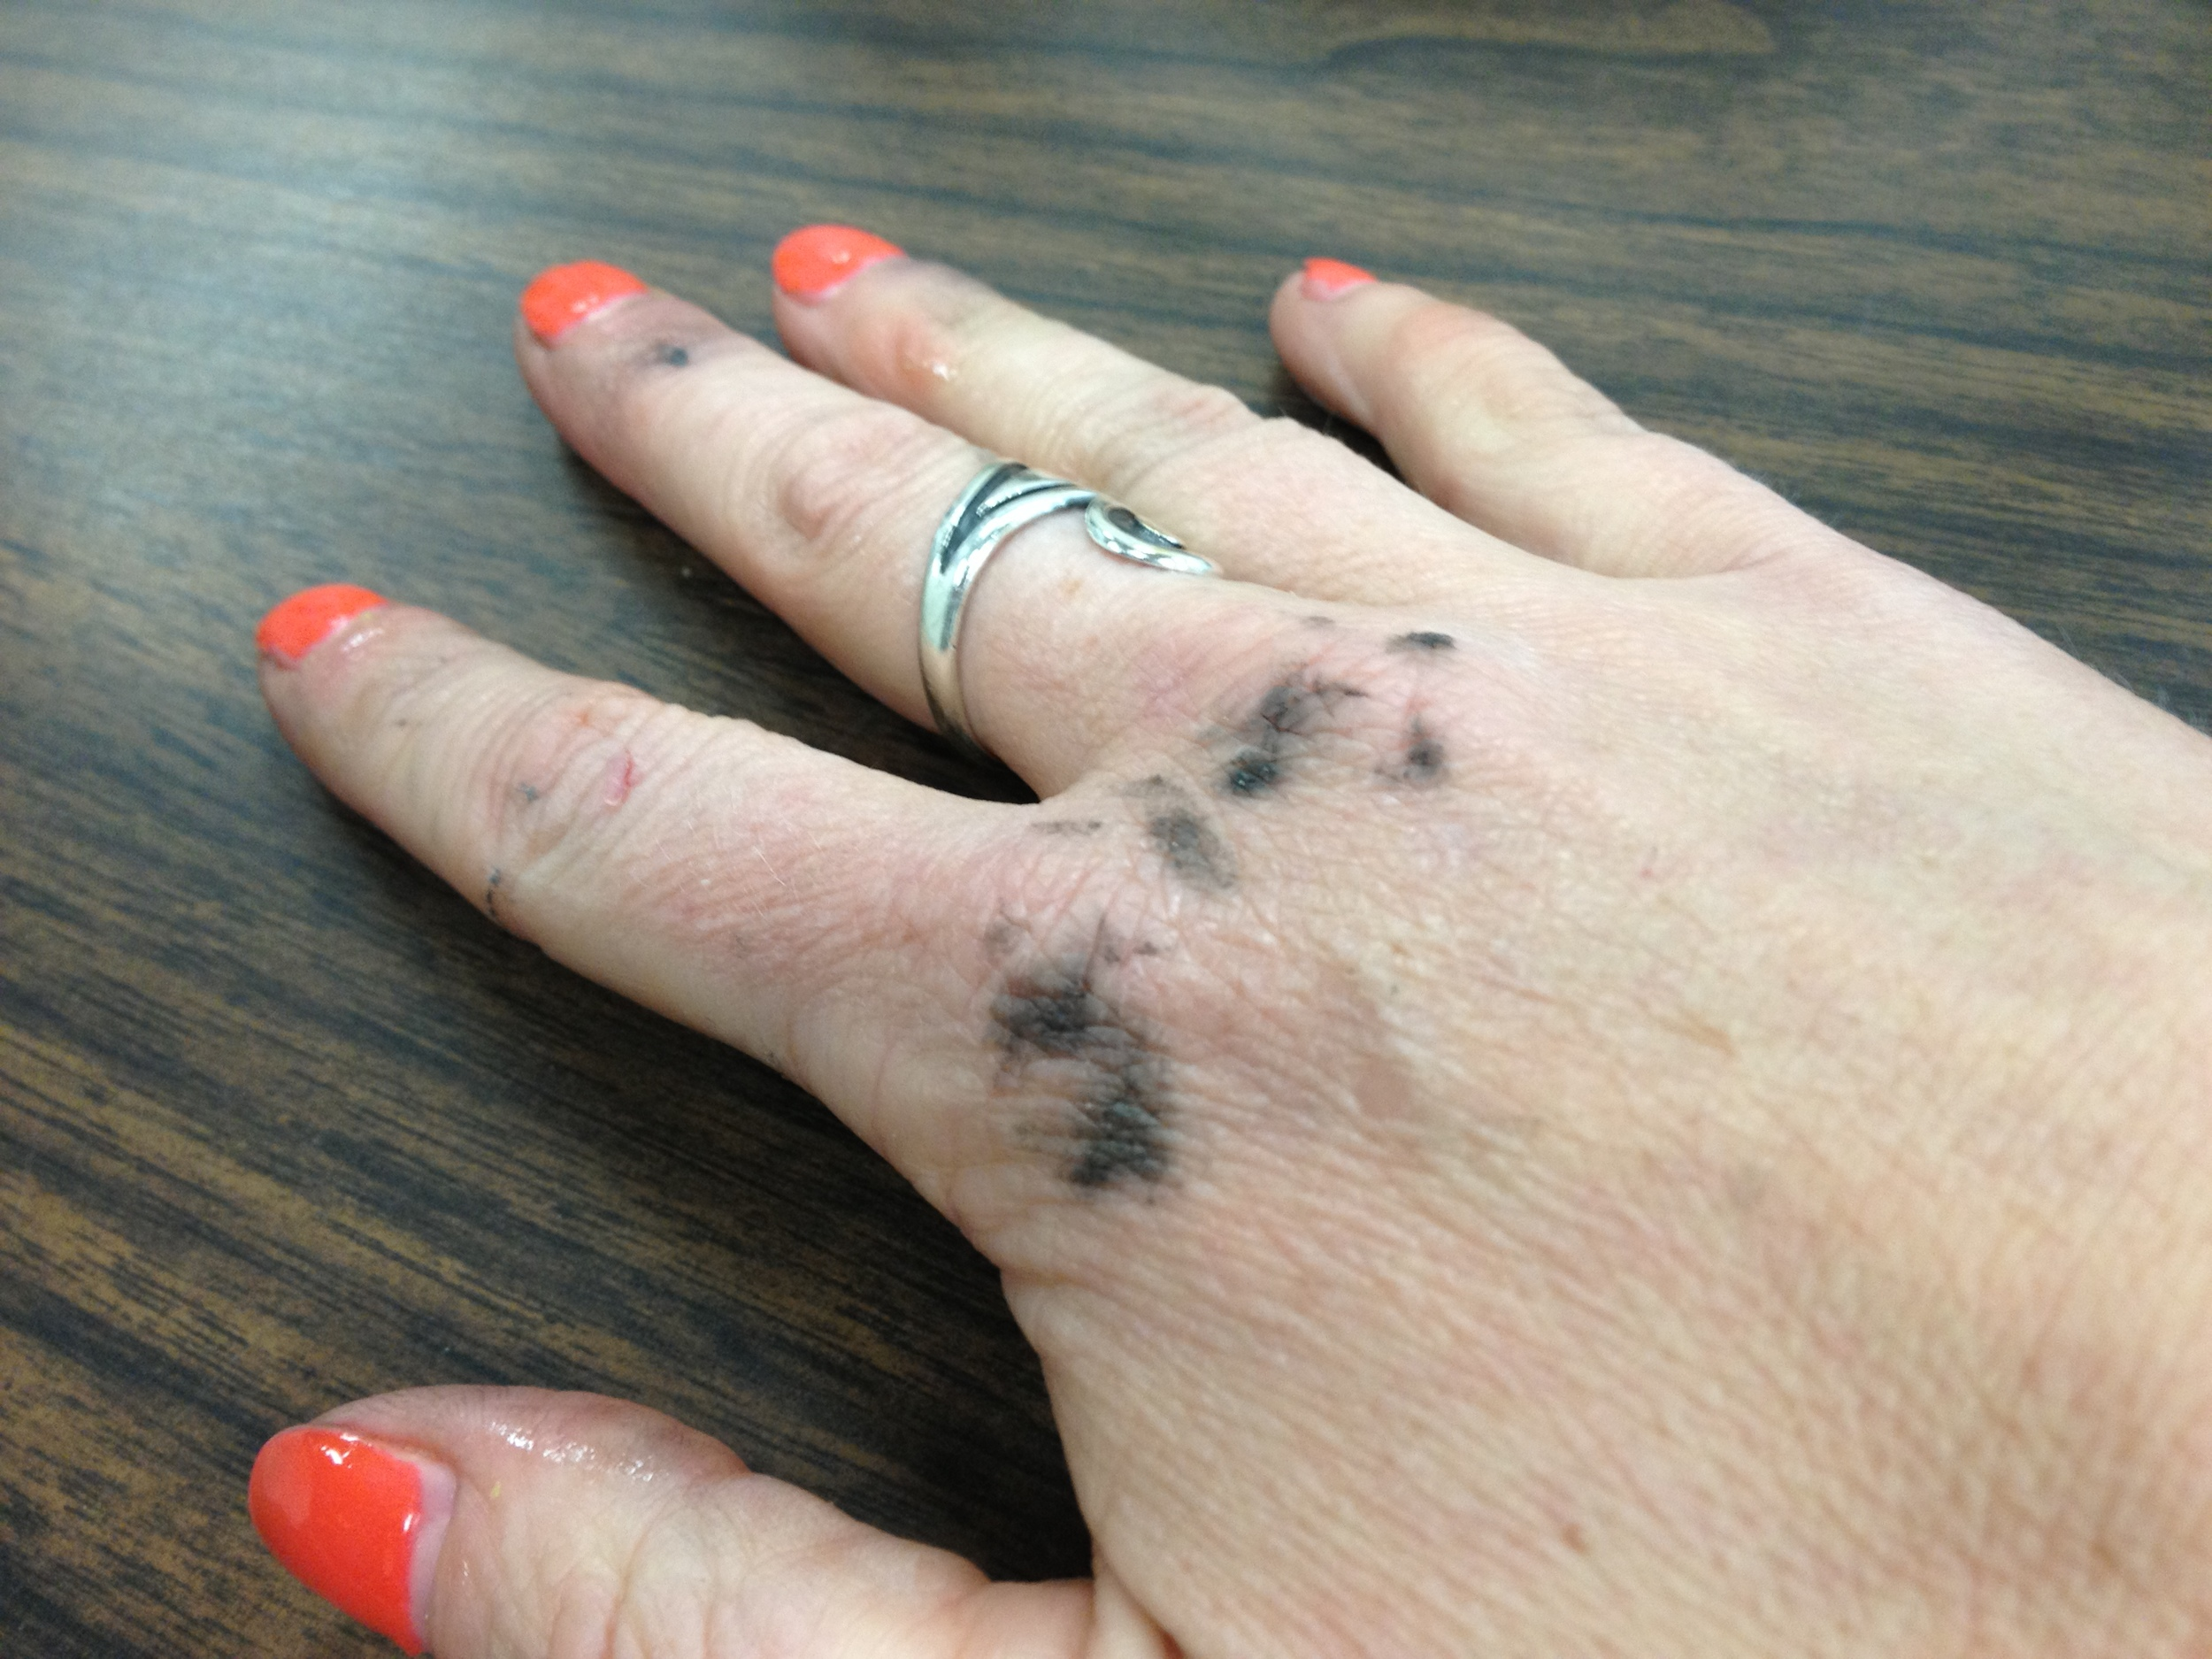 You know, orange finger nails and bike grease? Sexy!